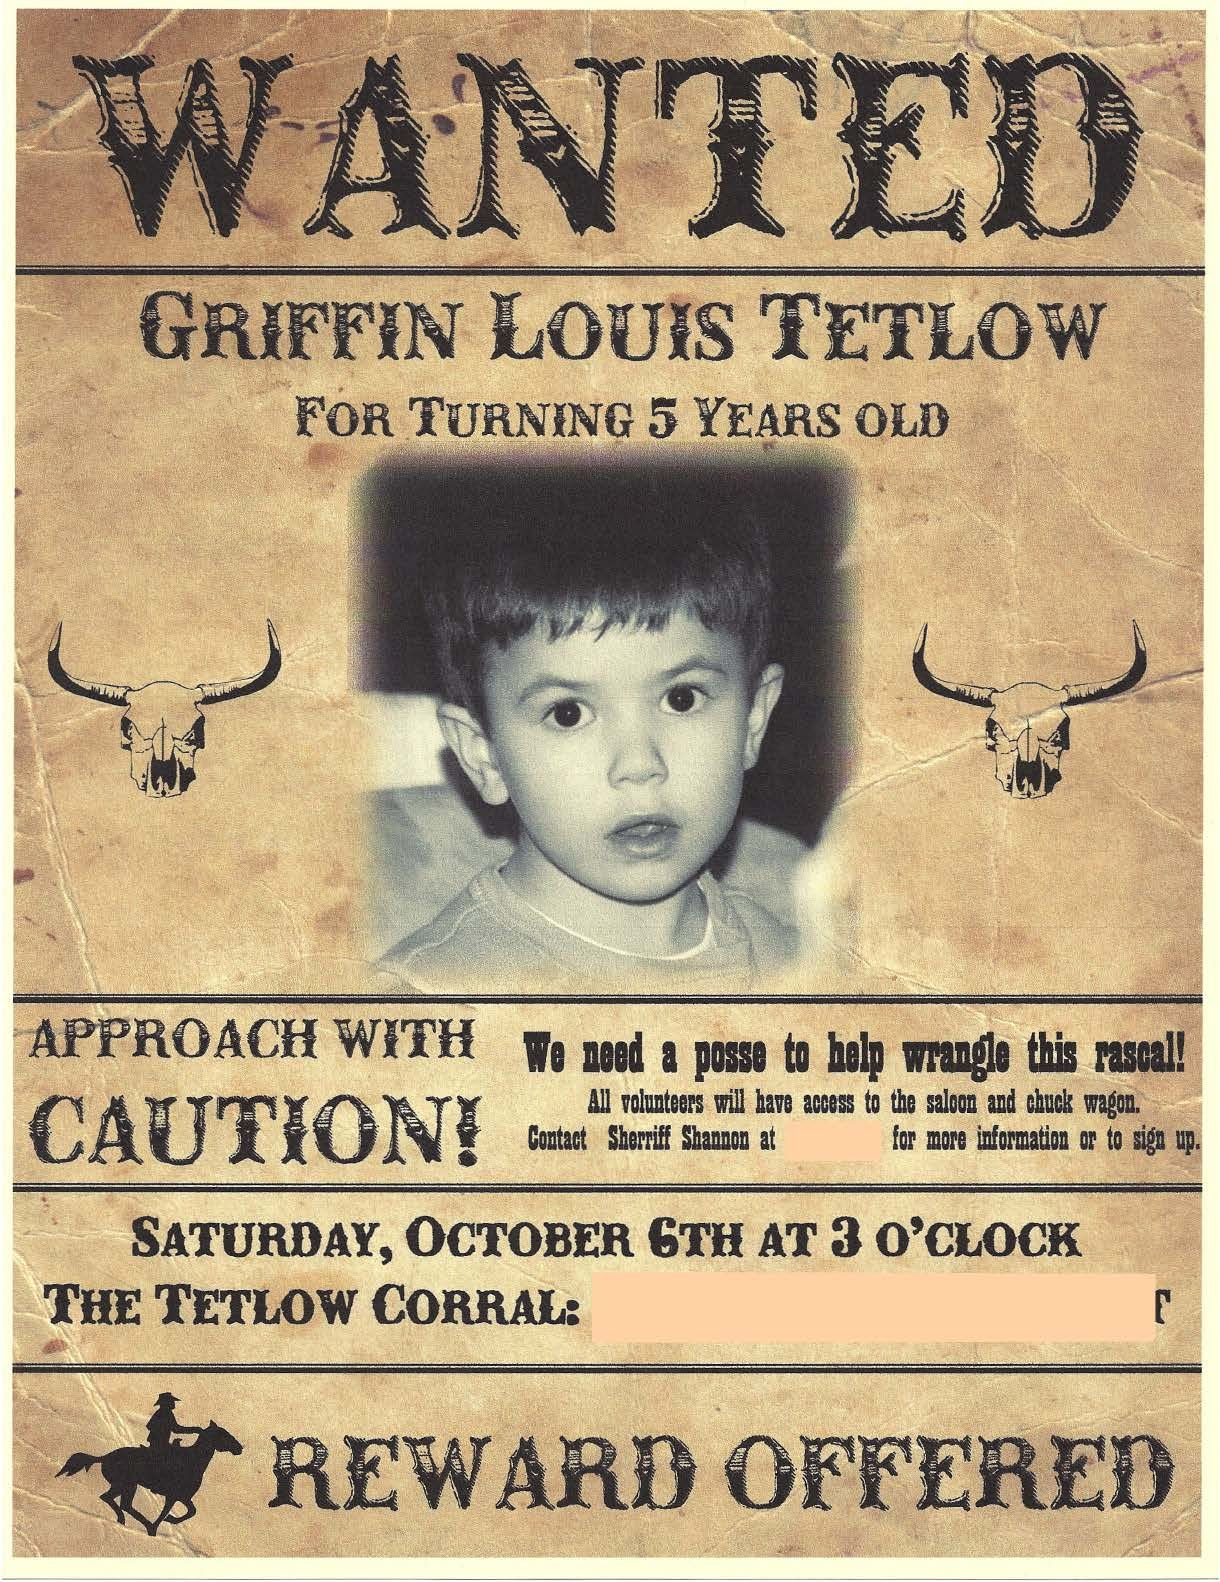 6b673ed5399b2f280a27c4c399d7c10b cowboy birthday invitation wanted poster favorite places,Wanted Poster Birthday Invitations